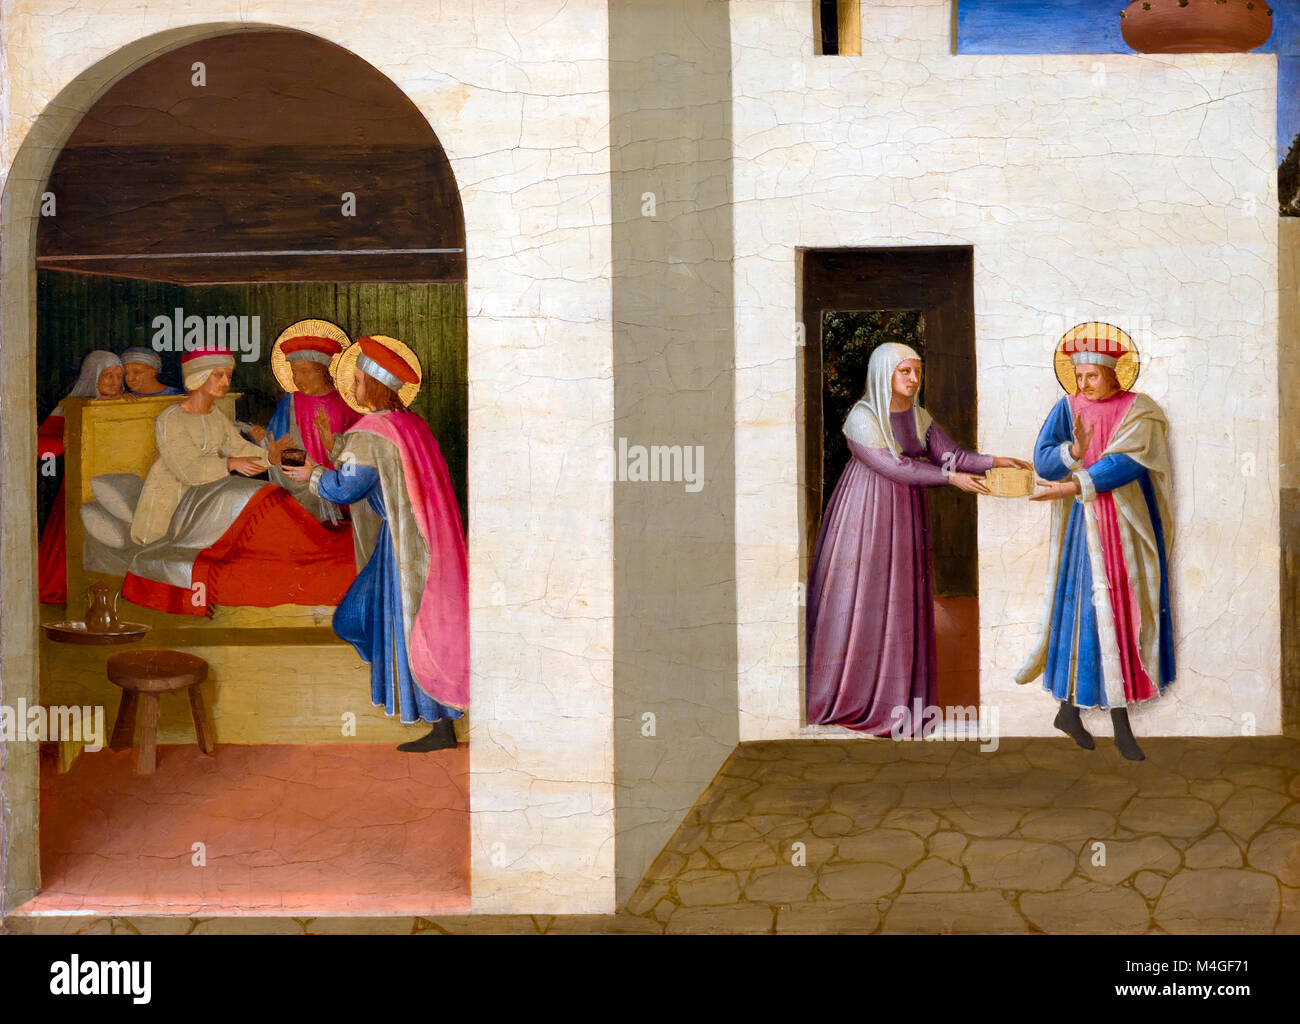 The Healing of Palladia by Saint Cosmos and Saint Damian, Fra Angelico, circa 1440, National Gallery of Art, Washington - Stock Image